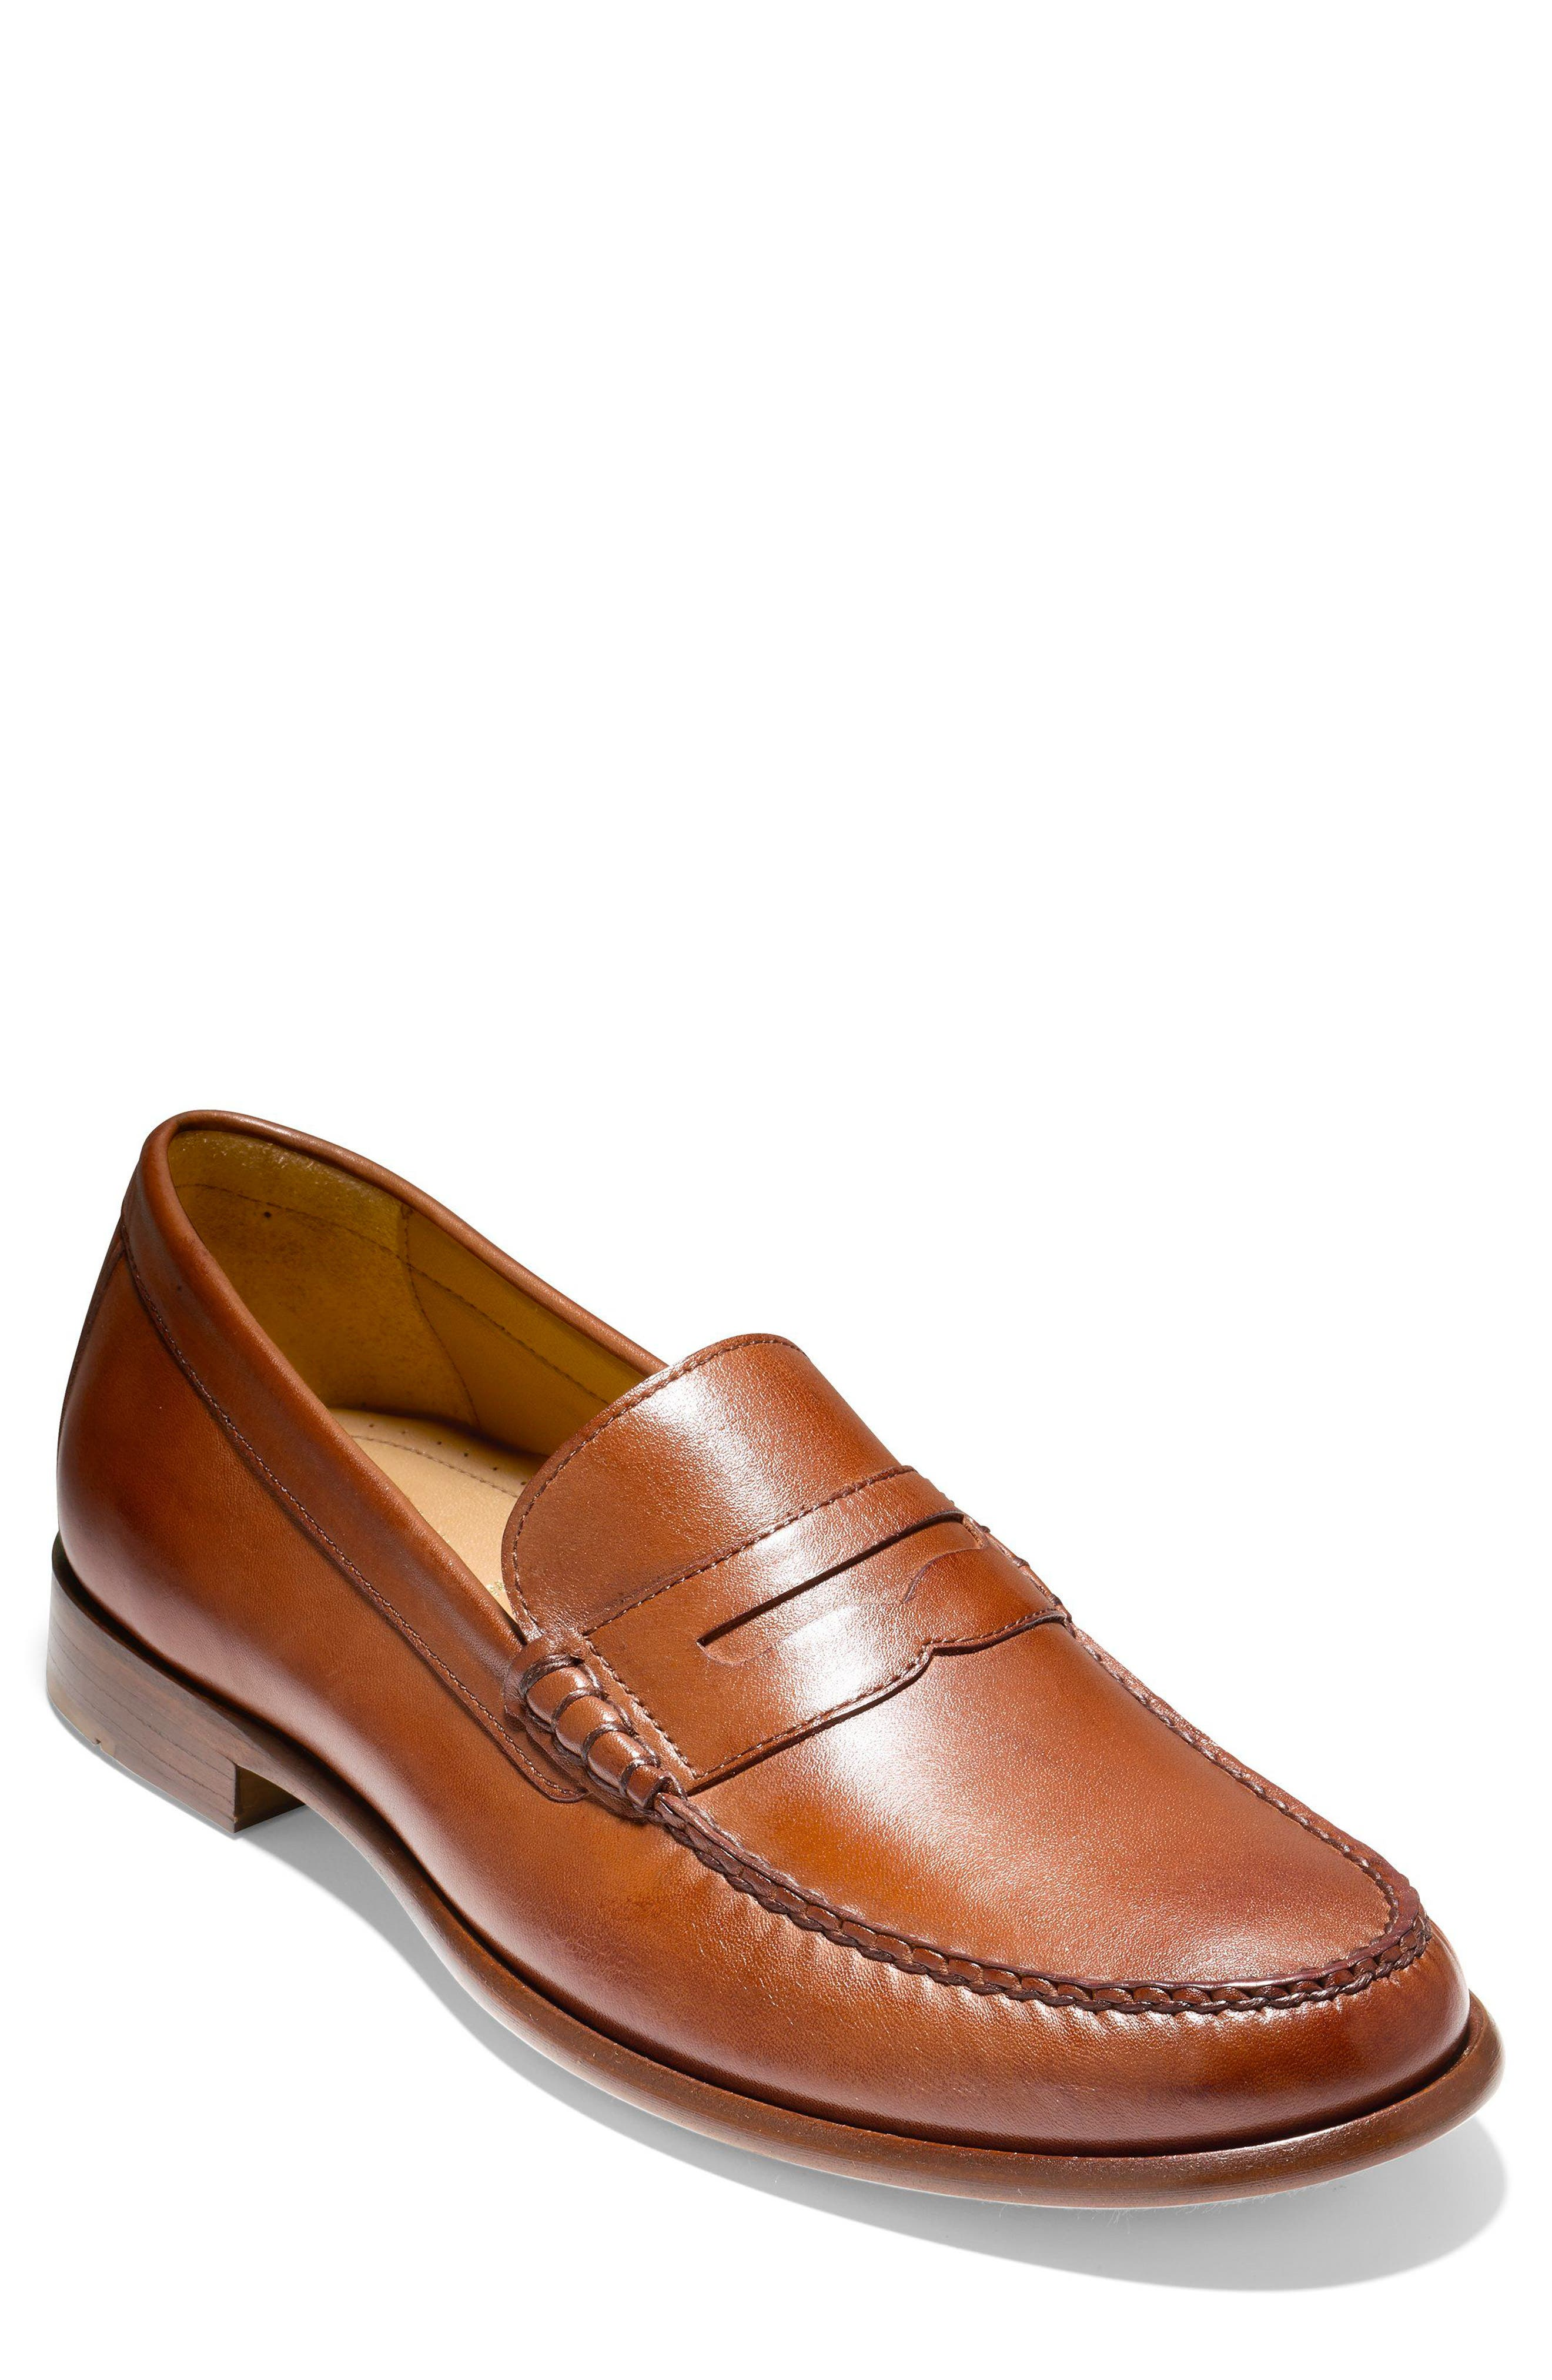 Pinch Penny Loafer,                             Main thumbnail 1, color,                             200